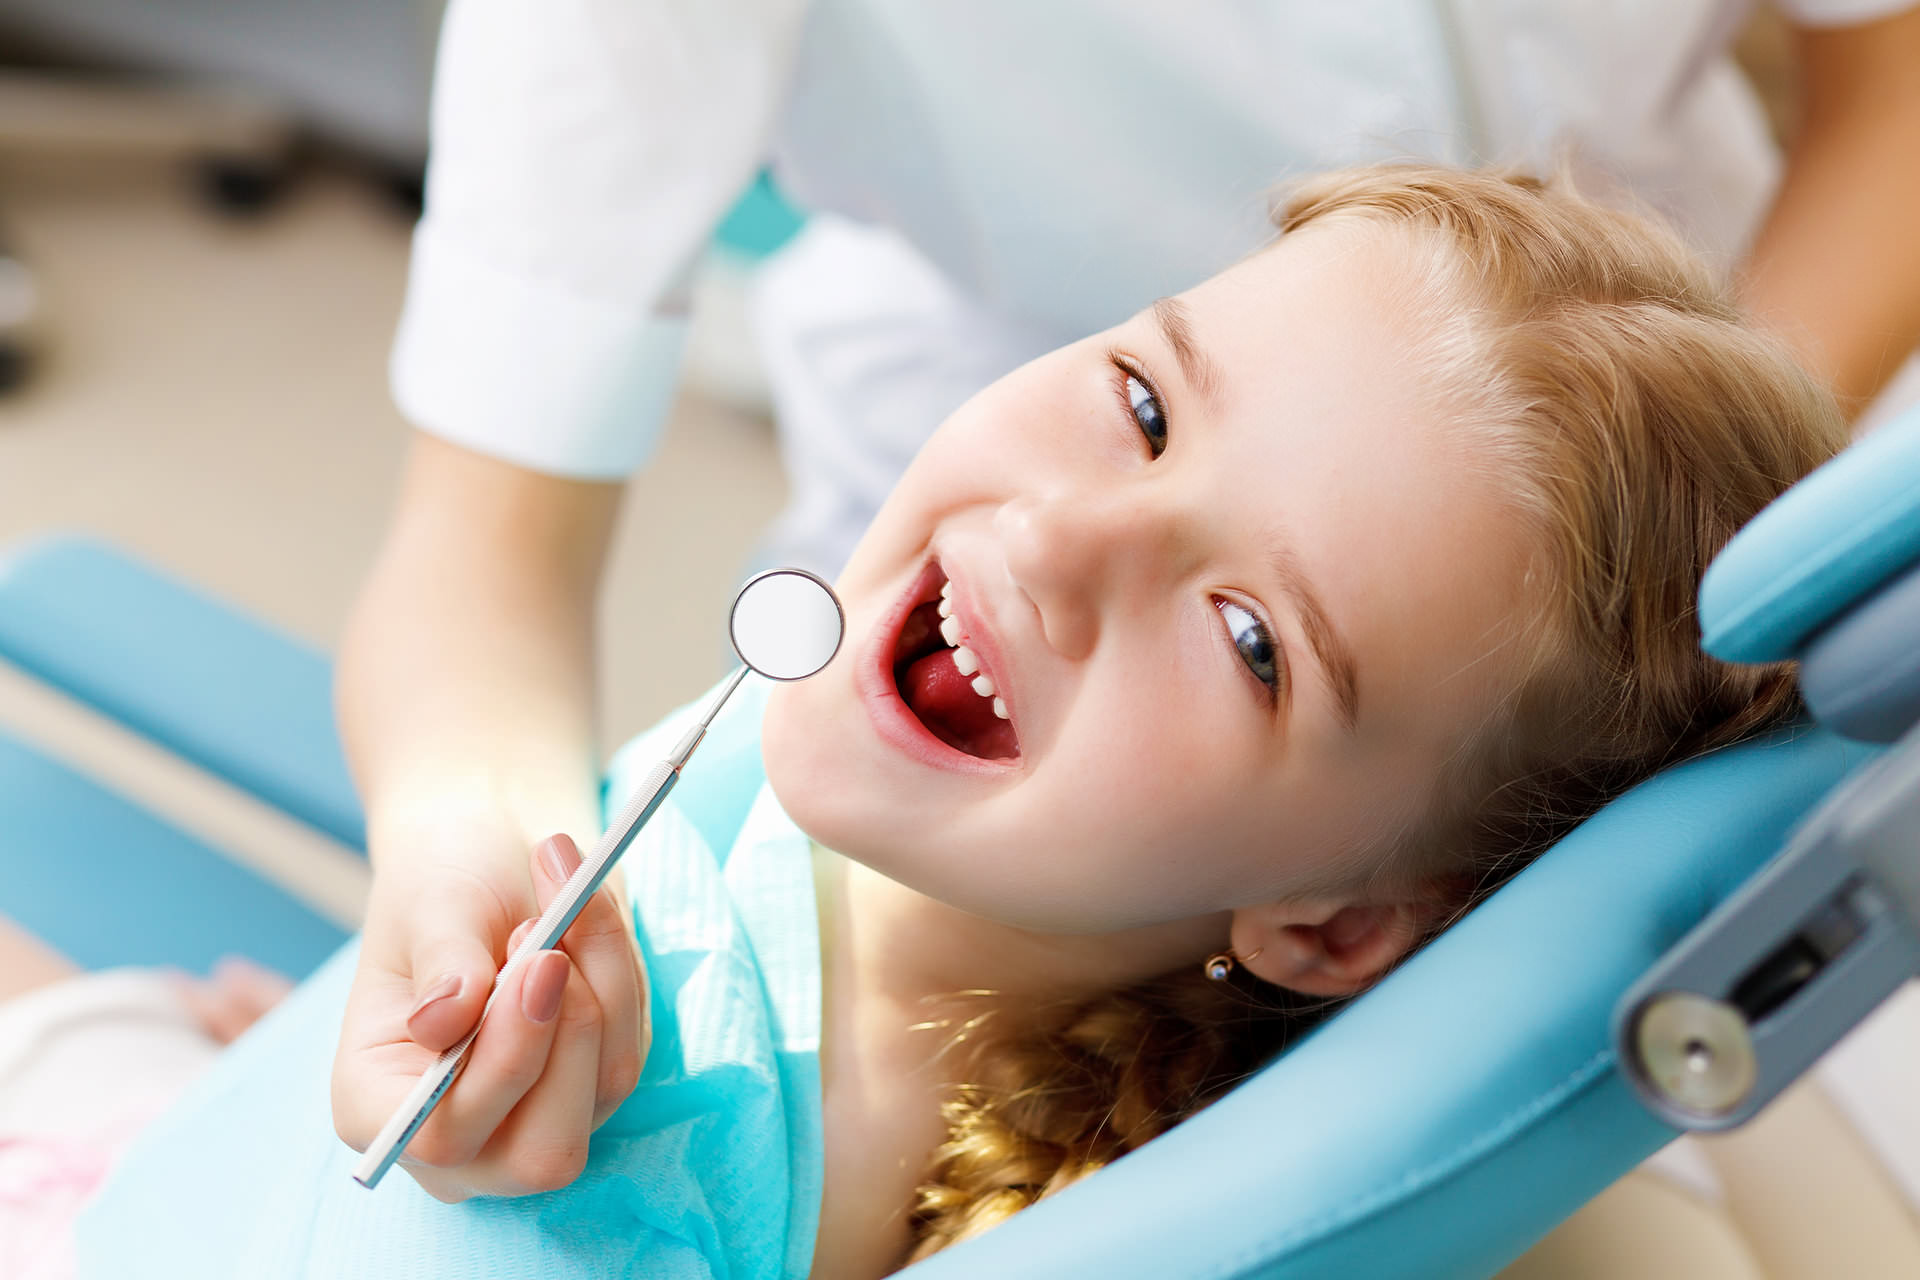 Teen girl dental check-up